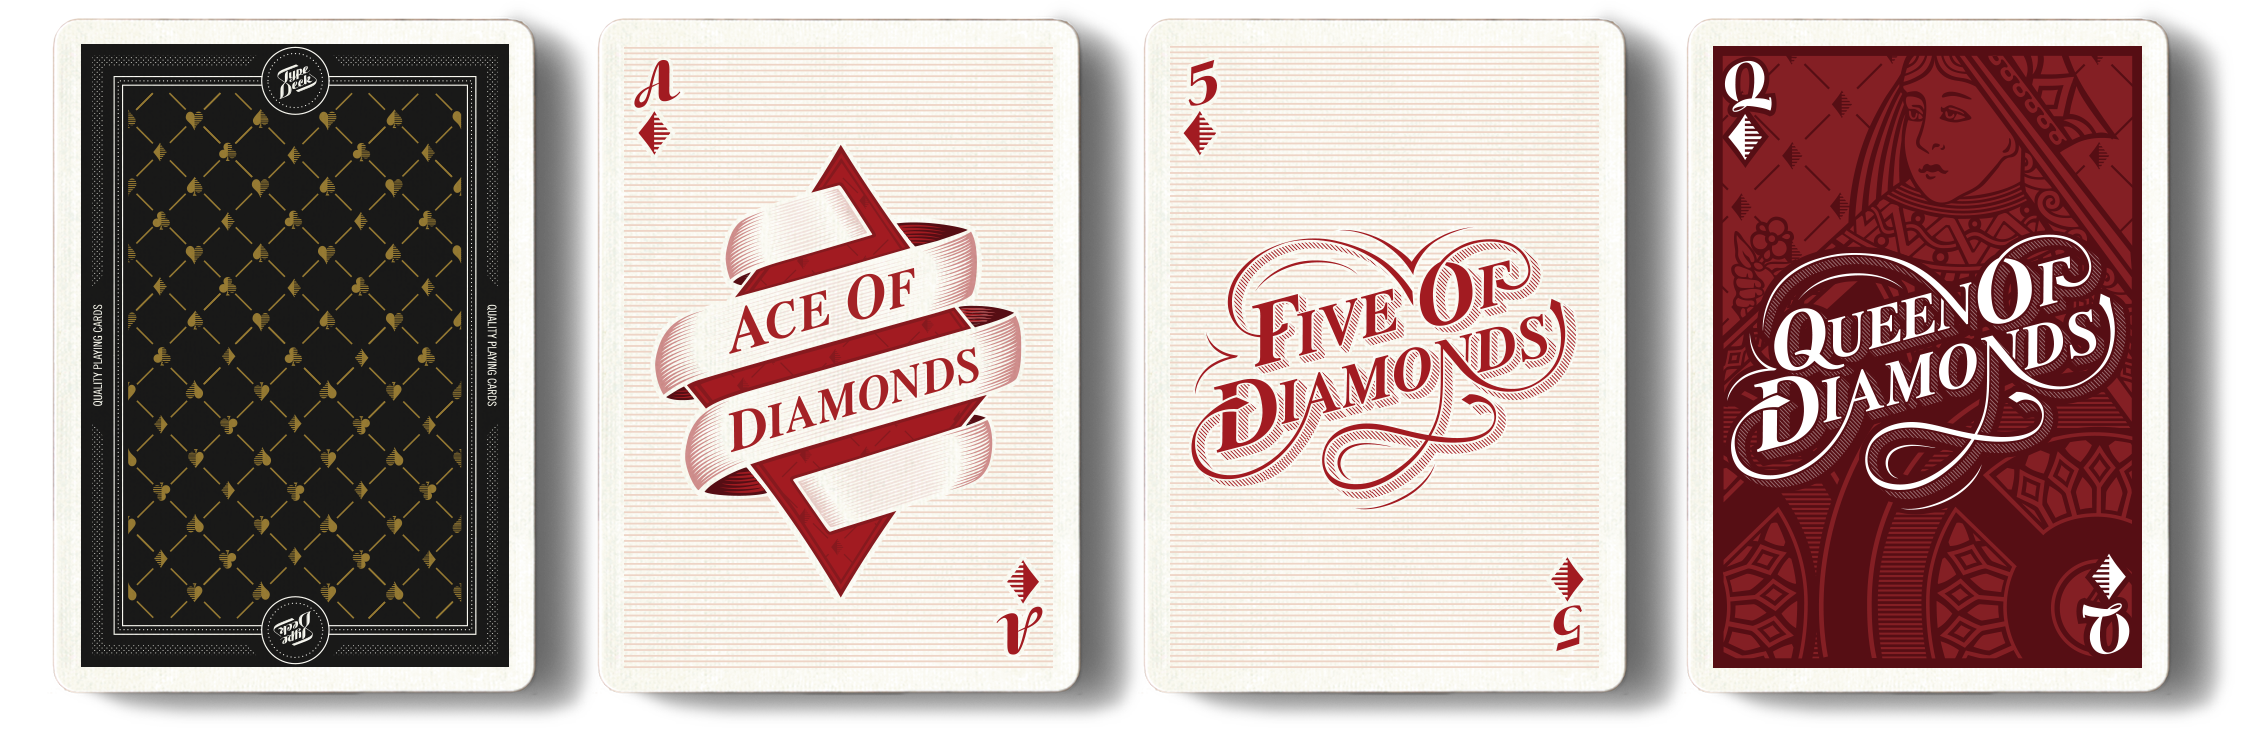 TYPOGRAPHY - The Type Deck - Quality Typographic Playing Cards